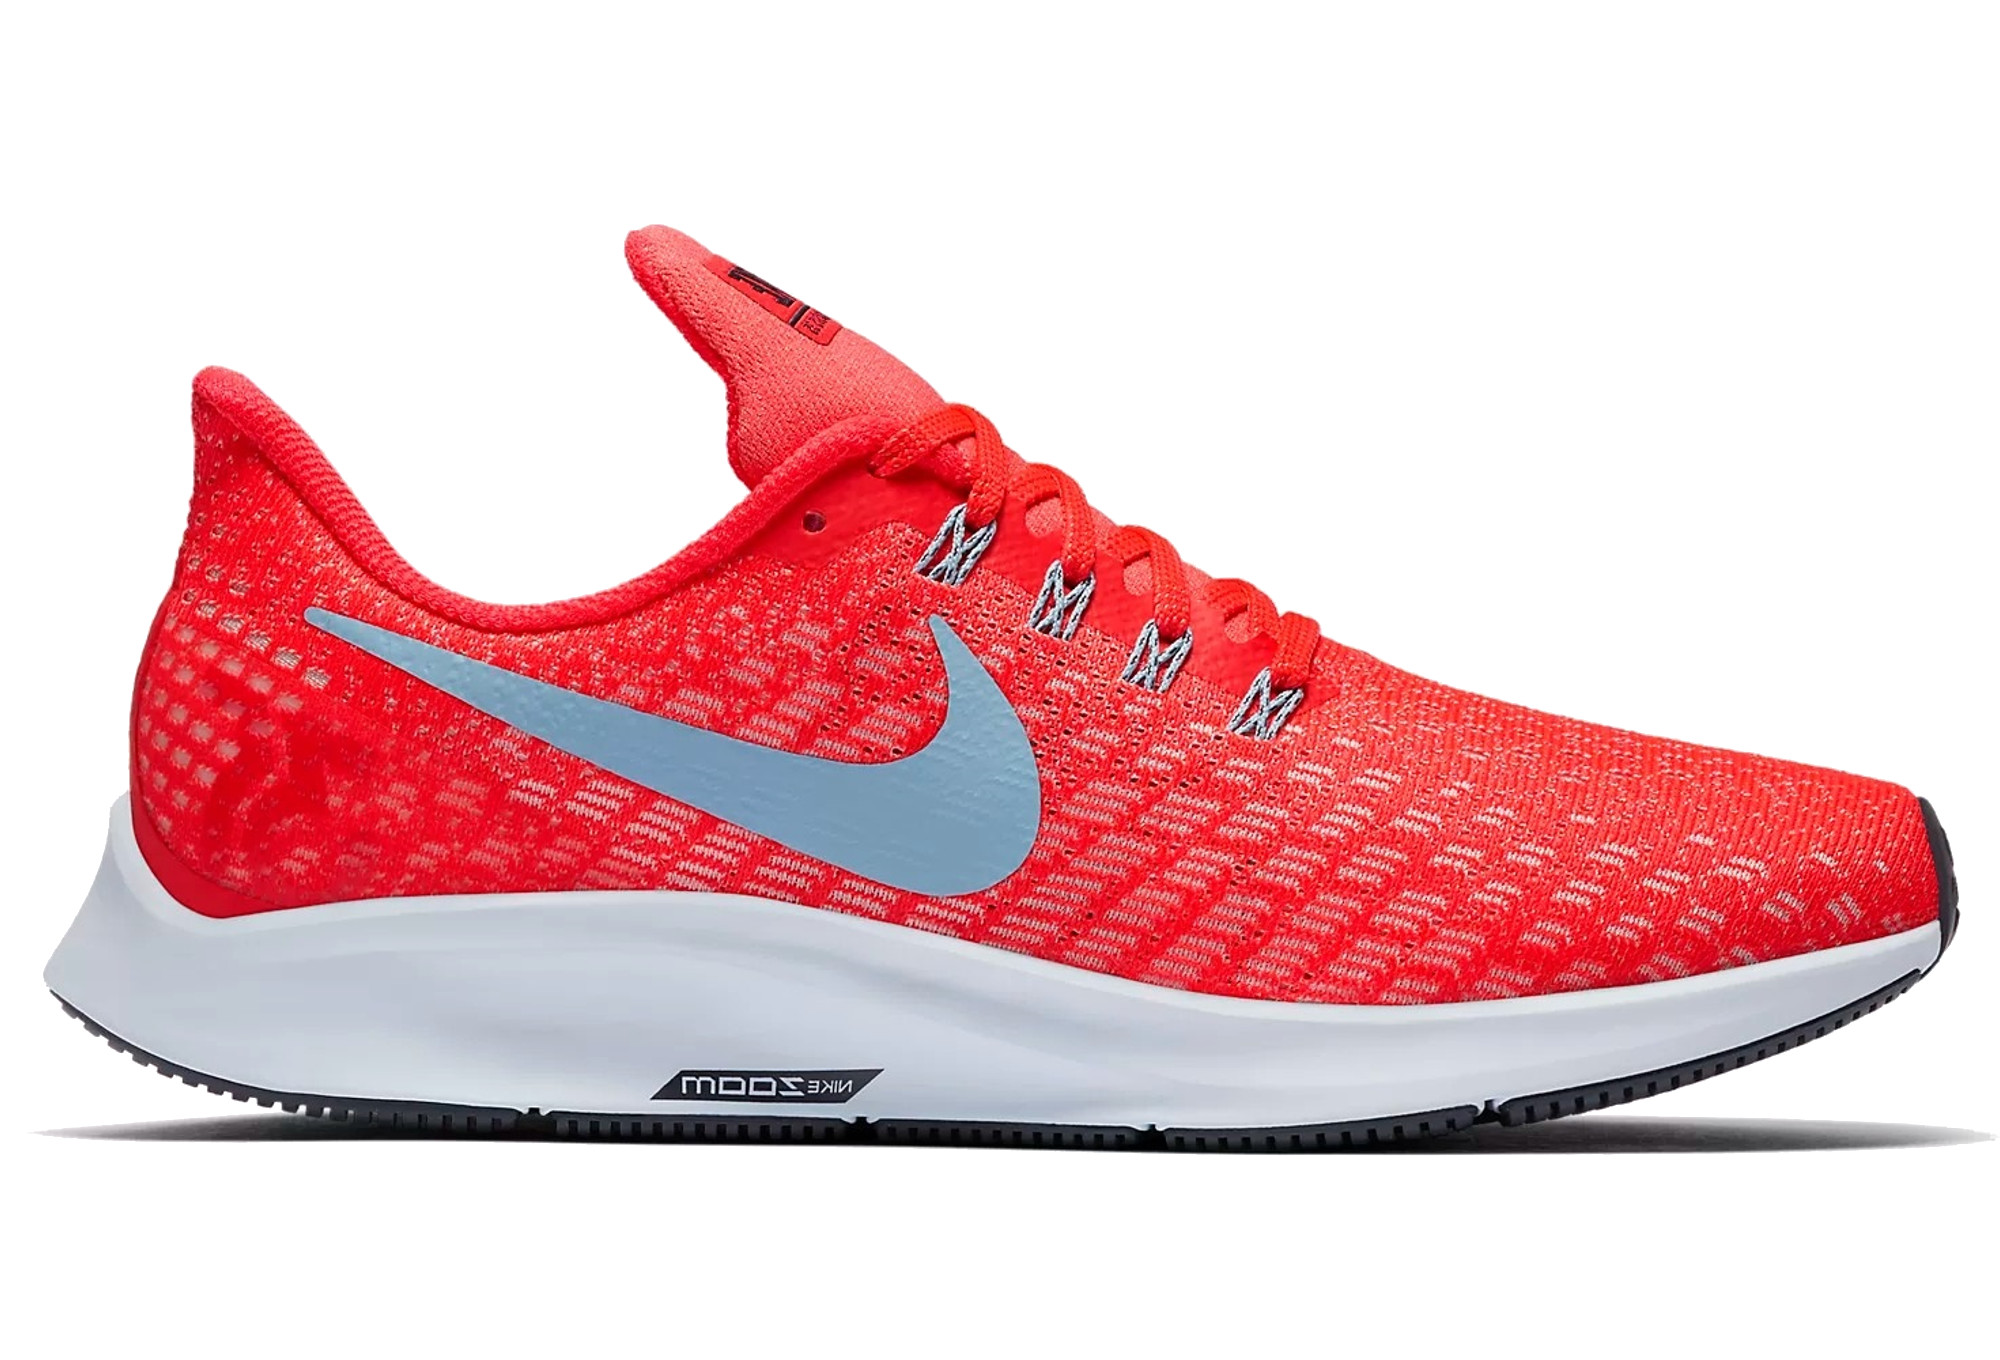 promo code 61edd 860a2 Chaussures de Running Femme Nike Air Zoom Pegasus 35 Rouge ...